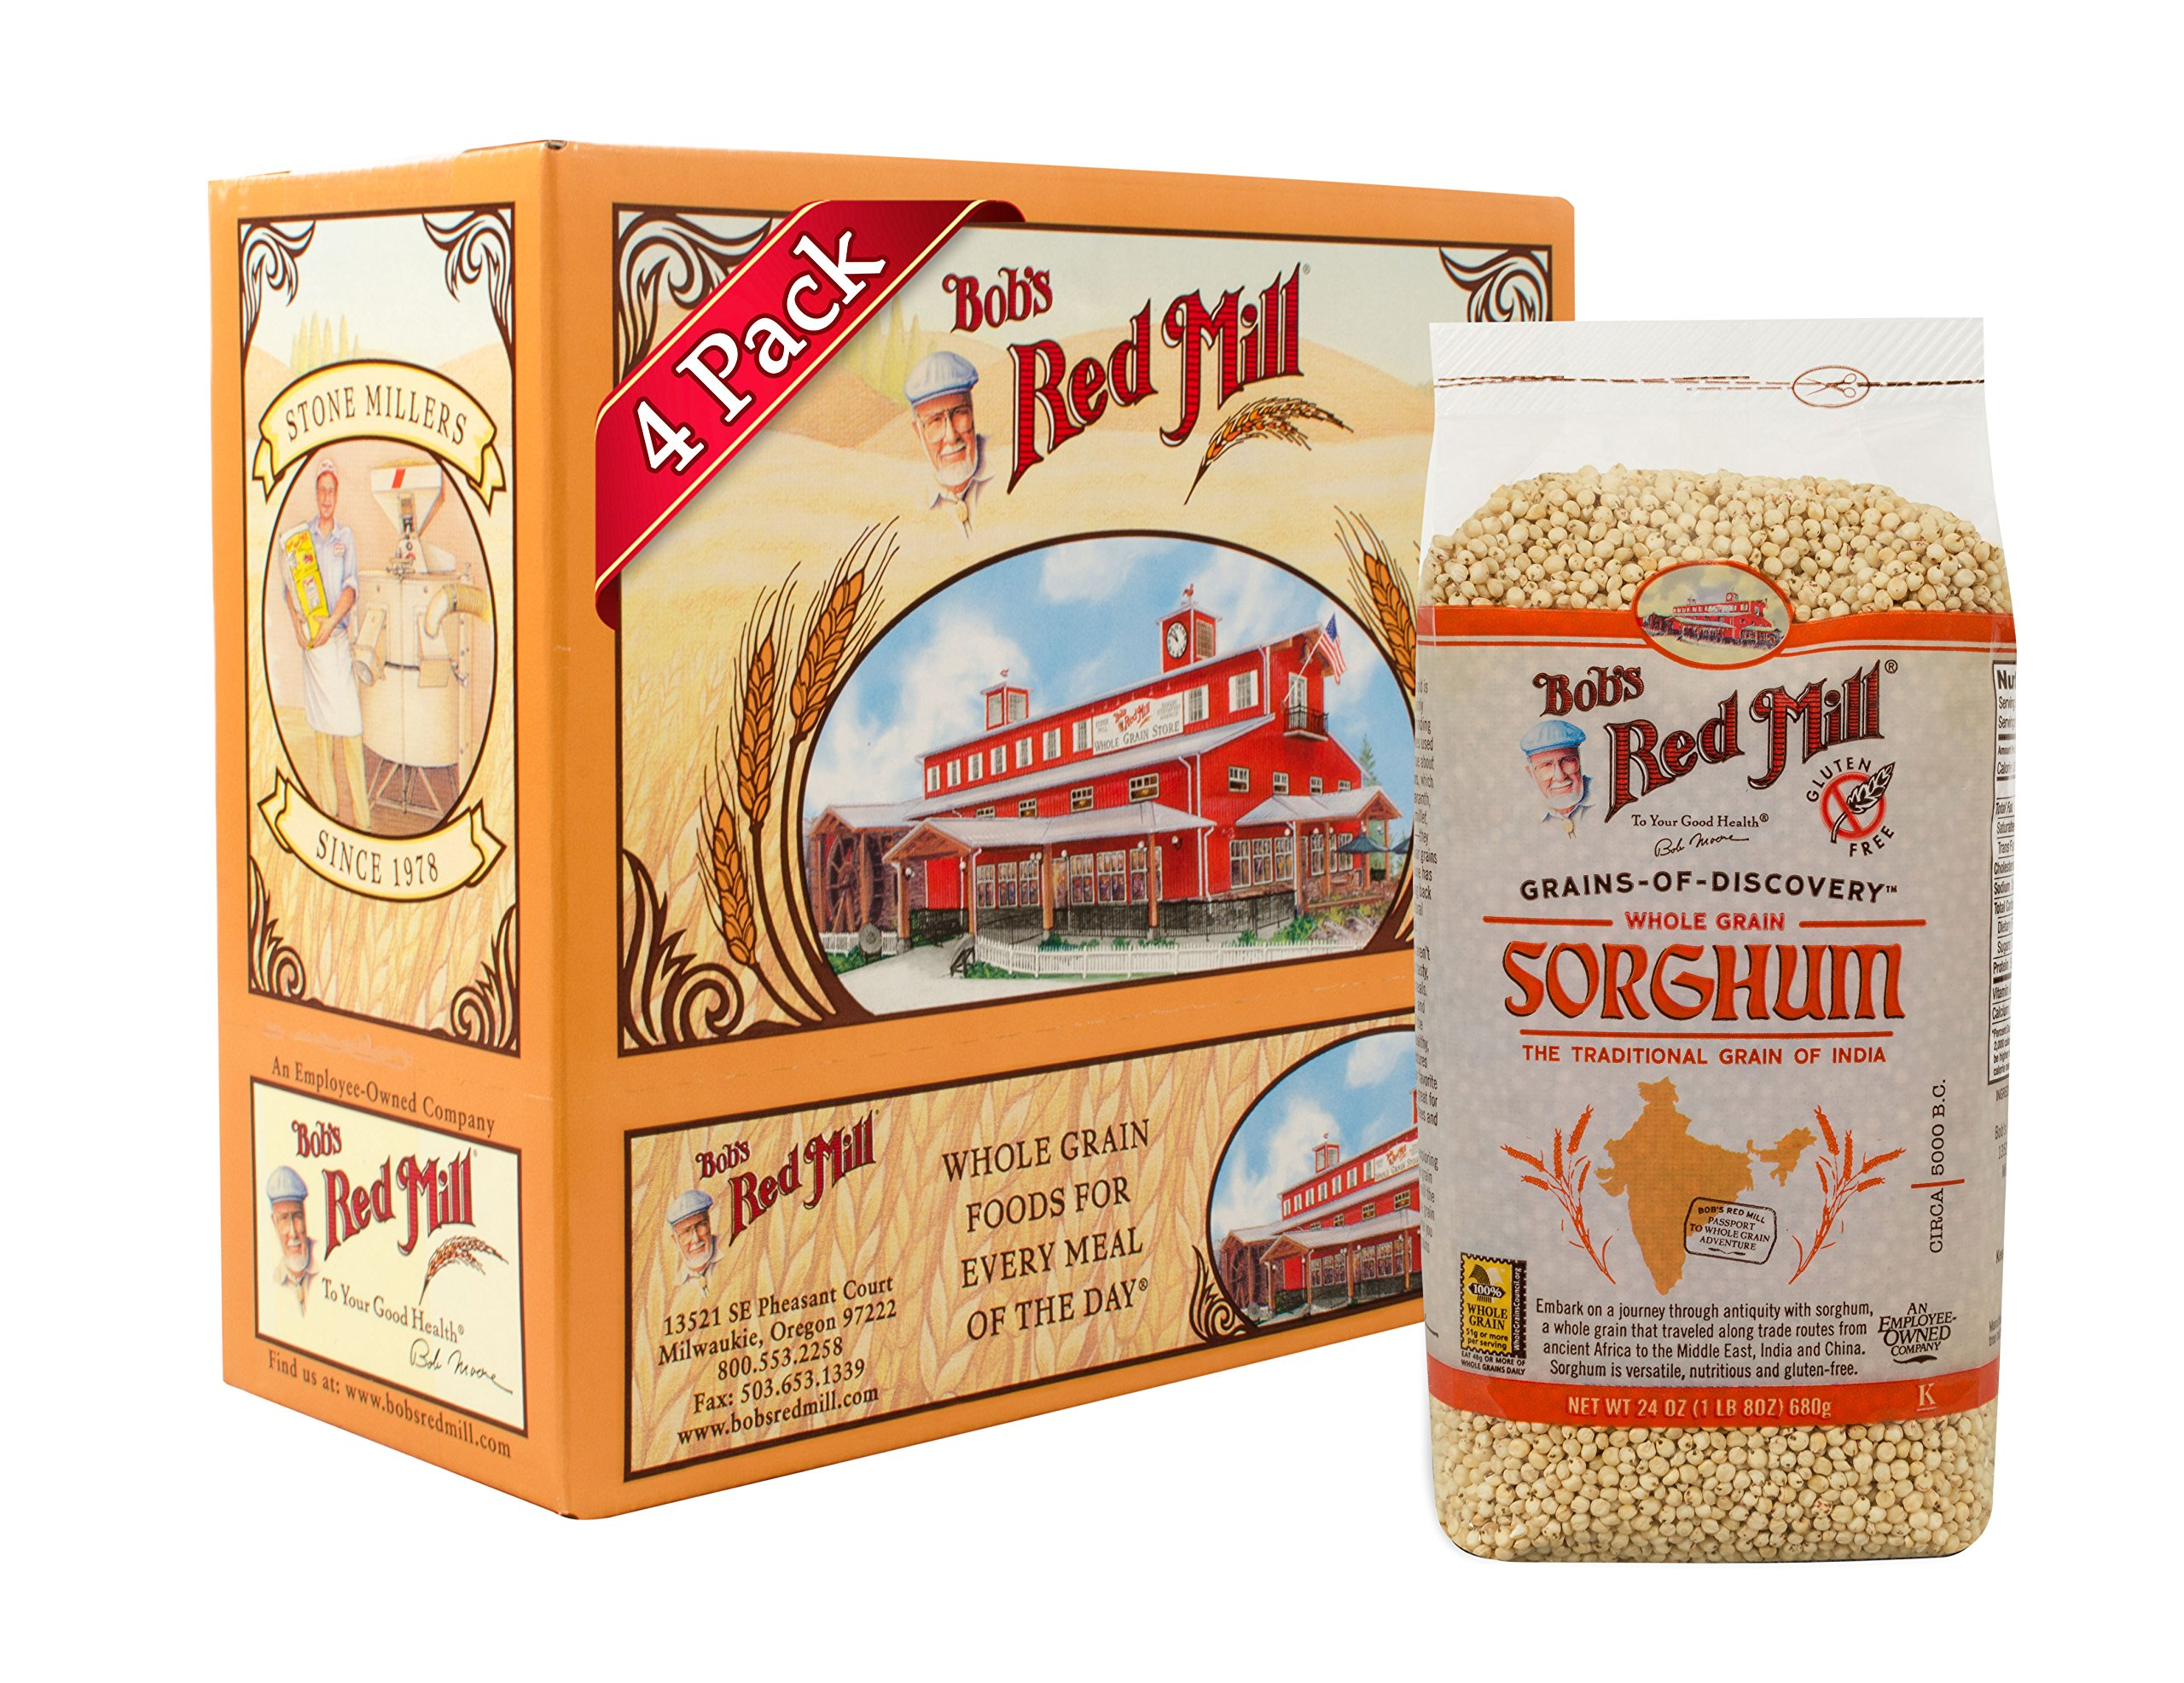 Bob's Red Mill Gluten Free Sweet White Sorghum Grain, 24-ounce (Pack of 4) by Bob's Red Mill